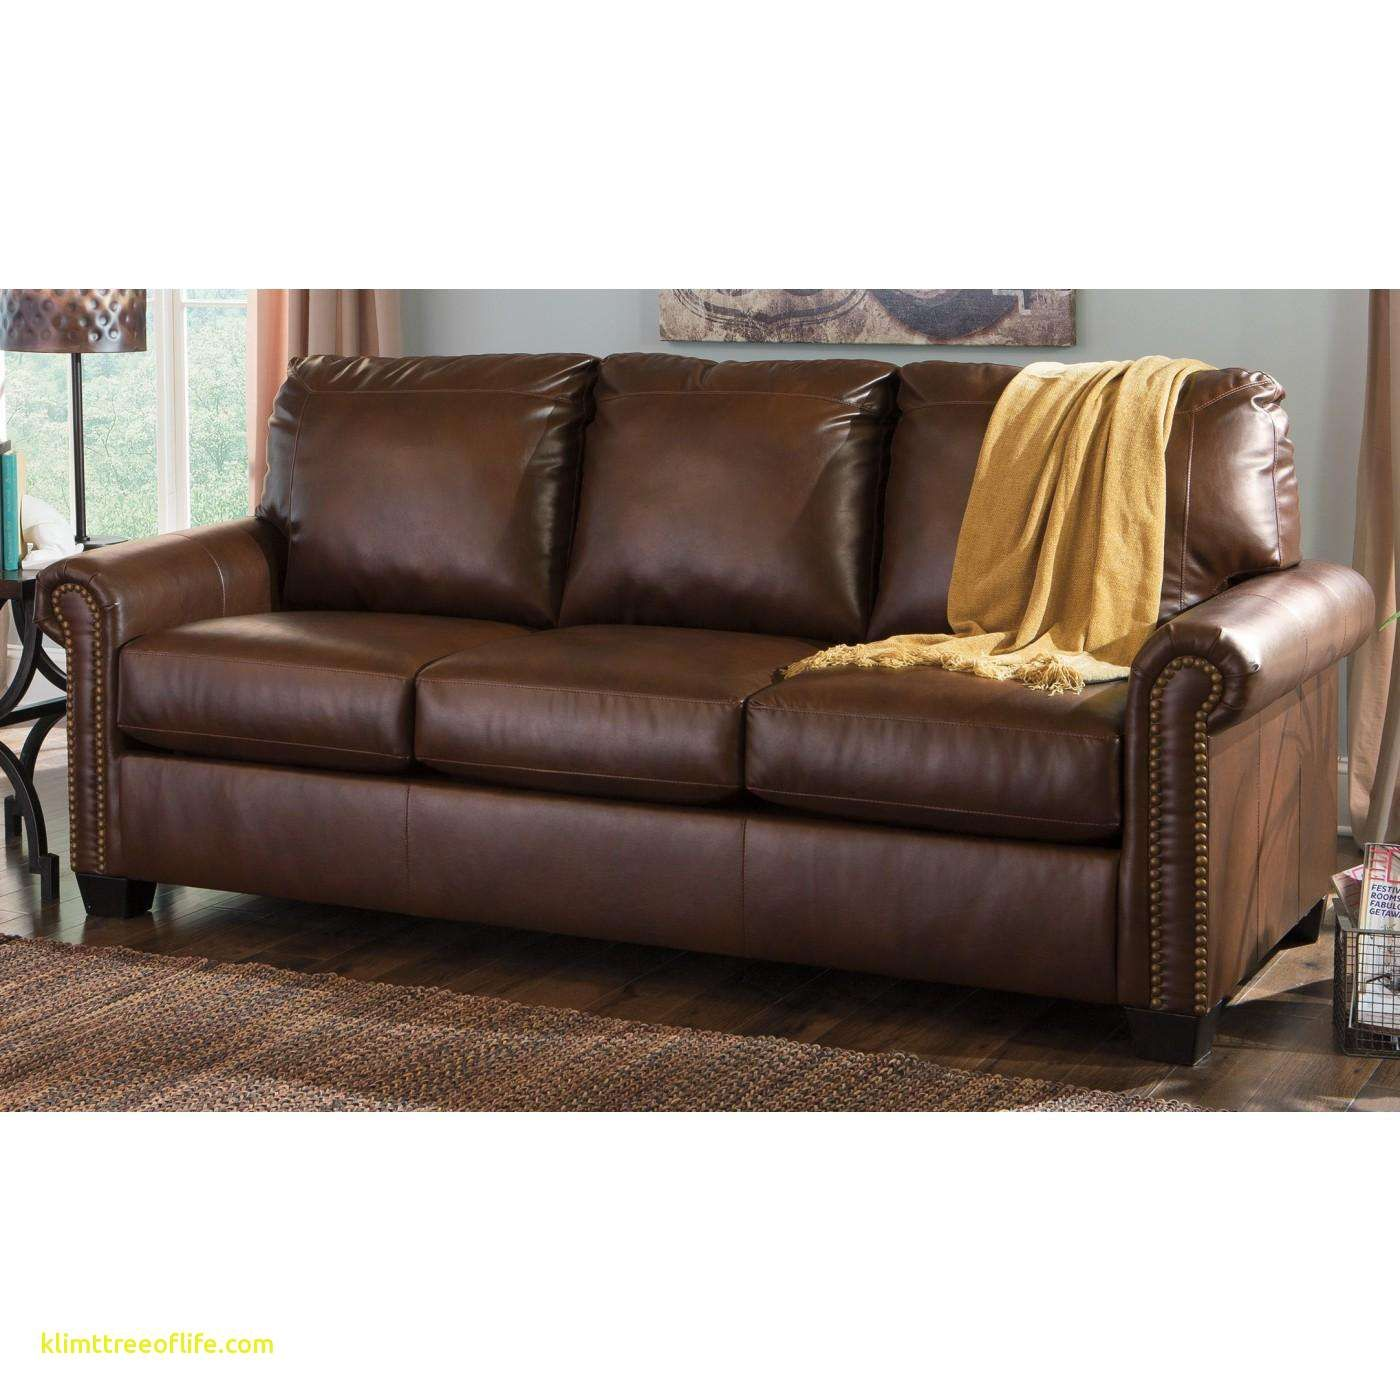 Pin by Nest Agnes on home decor | Queen size sleeper sofa ...